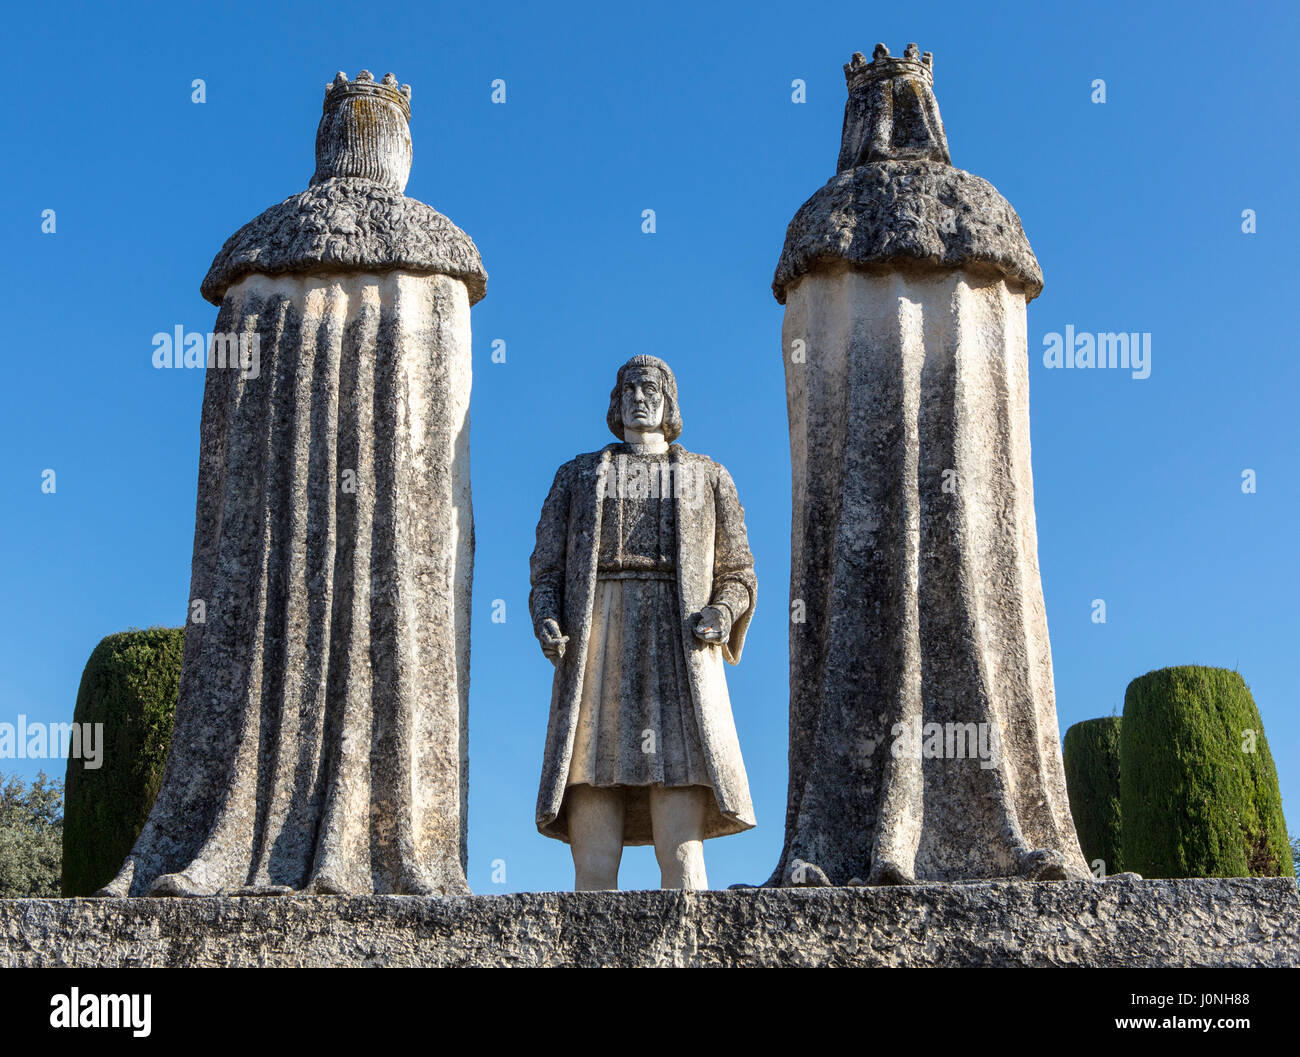 A statue showing Ferdinand and Isabella, rulers of Spain in the 15th century, meeting Christopher Columbus at the - Stock Image